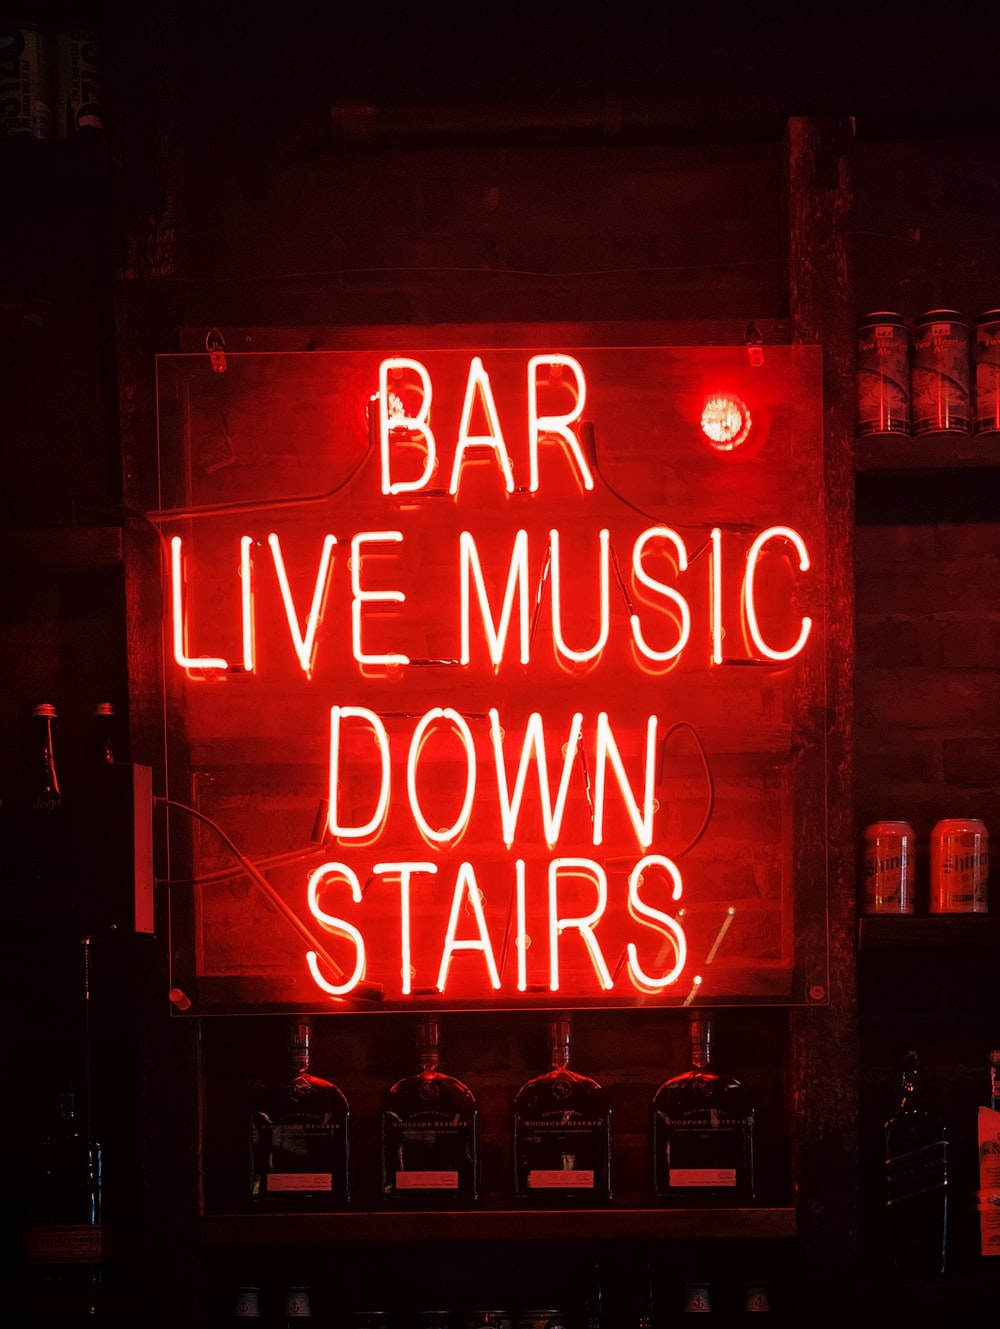 bar live music down stairs neon light signage